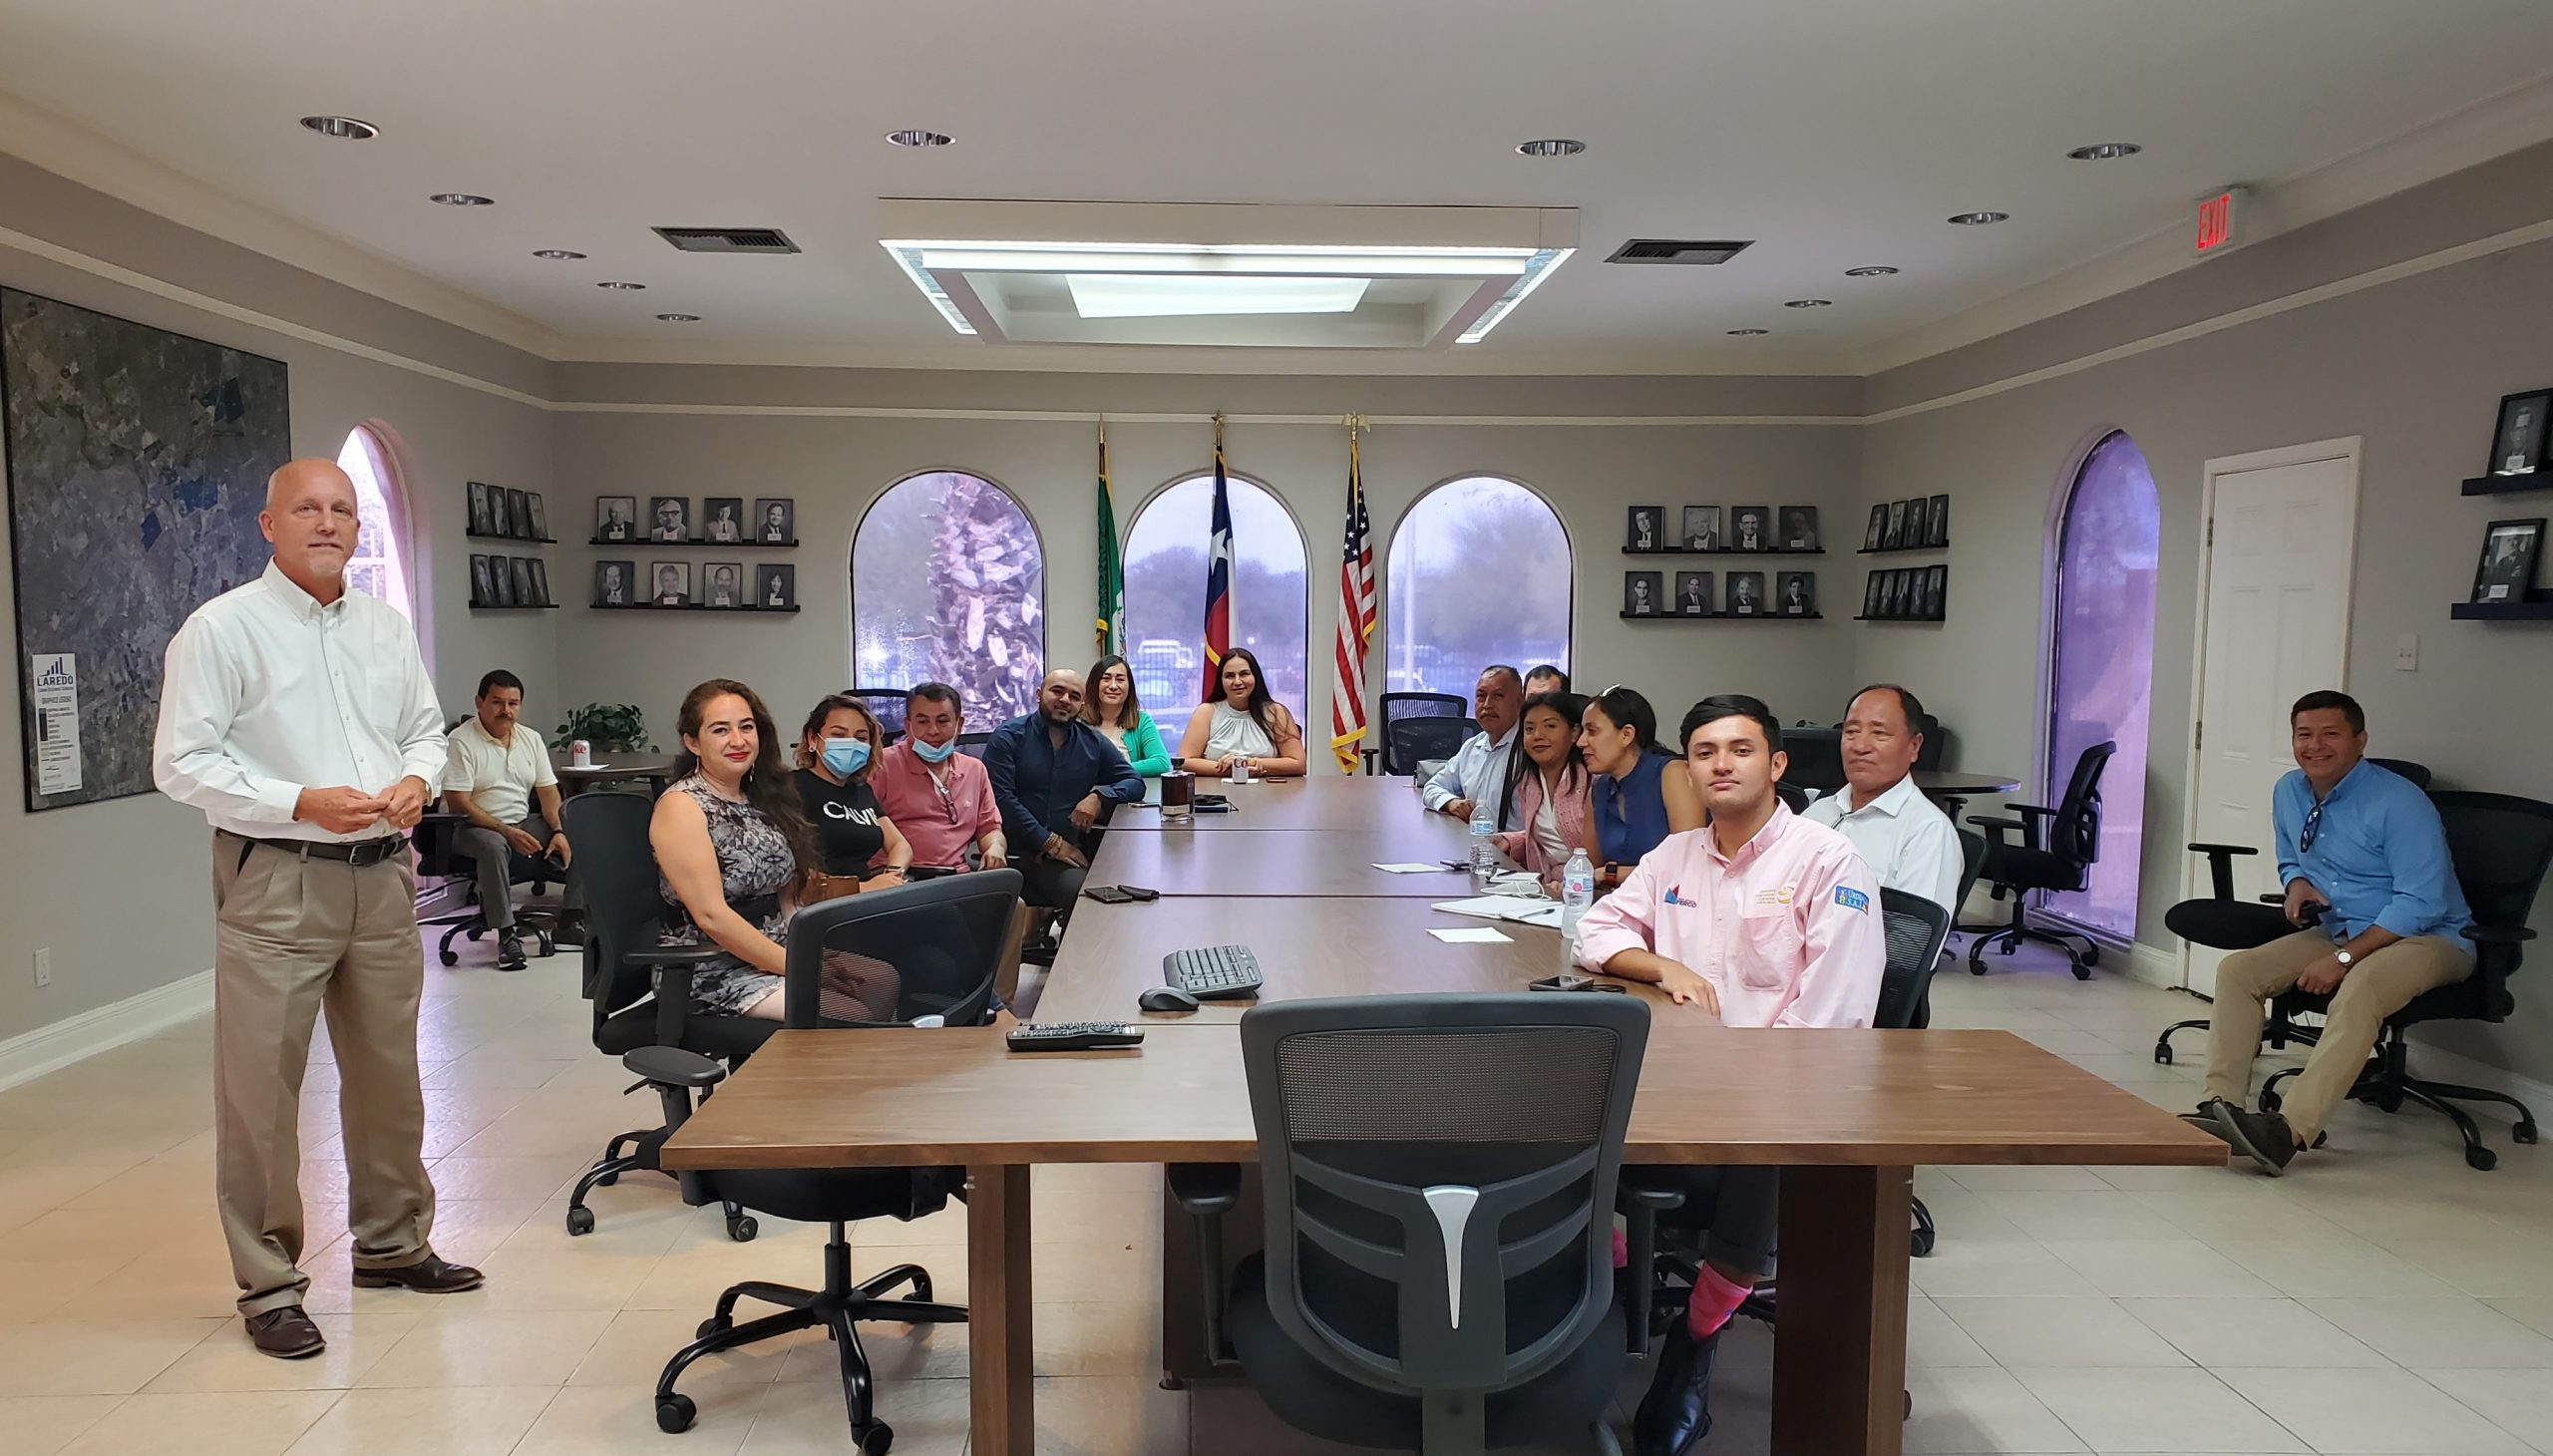 Commercial and Business Development Mission in Laredo Texas between US and Mexico